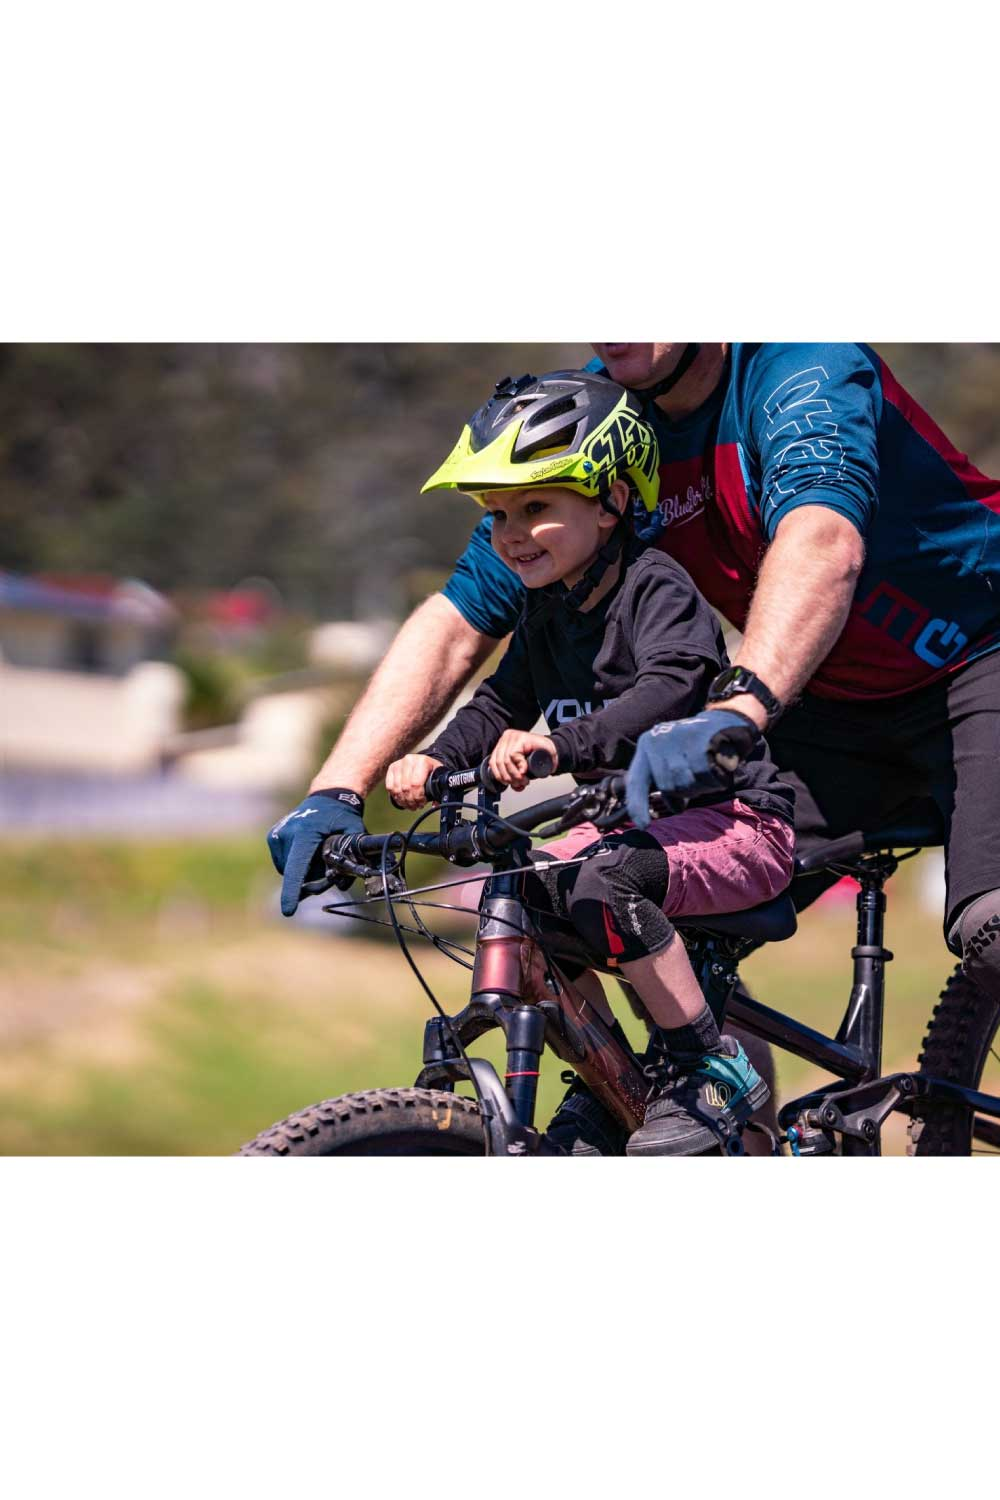 Shotgun Kids Mountain Bike Handlebars